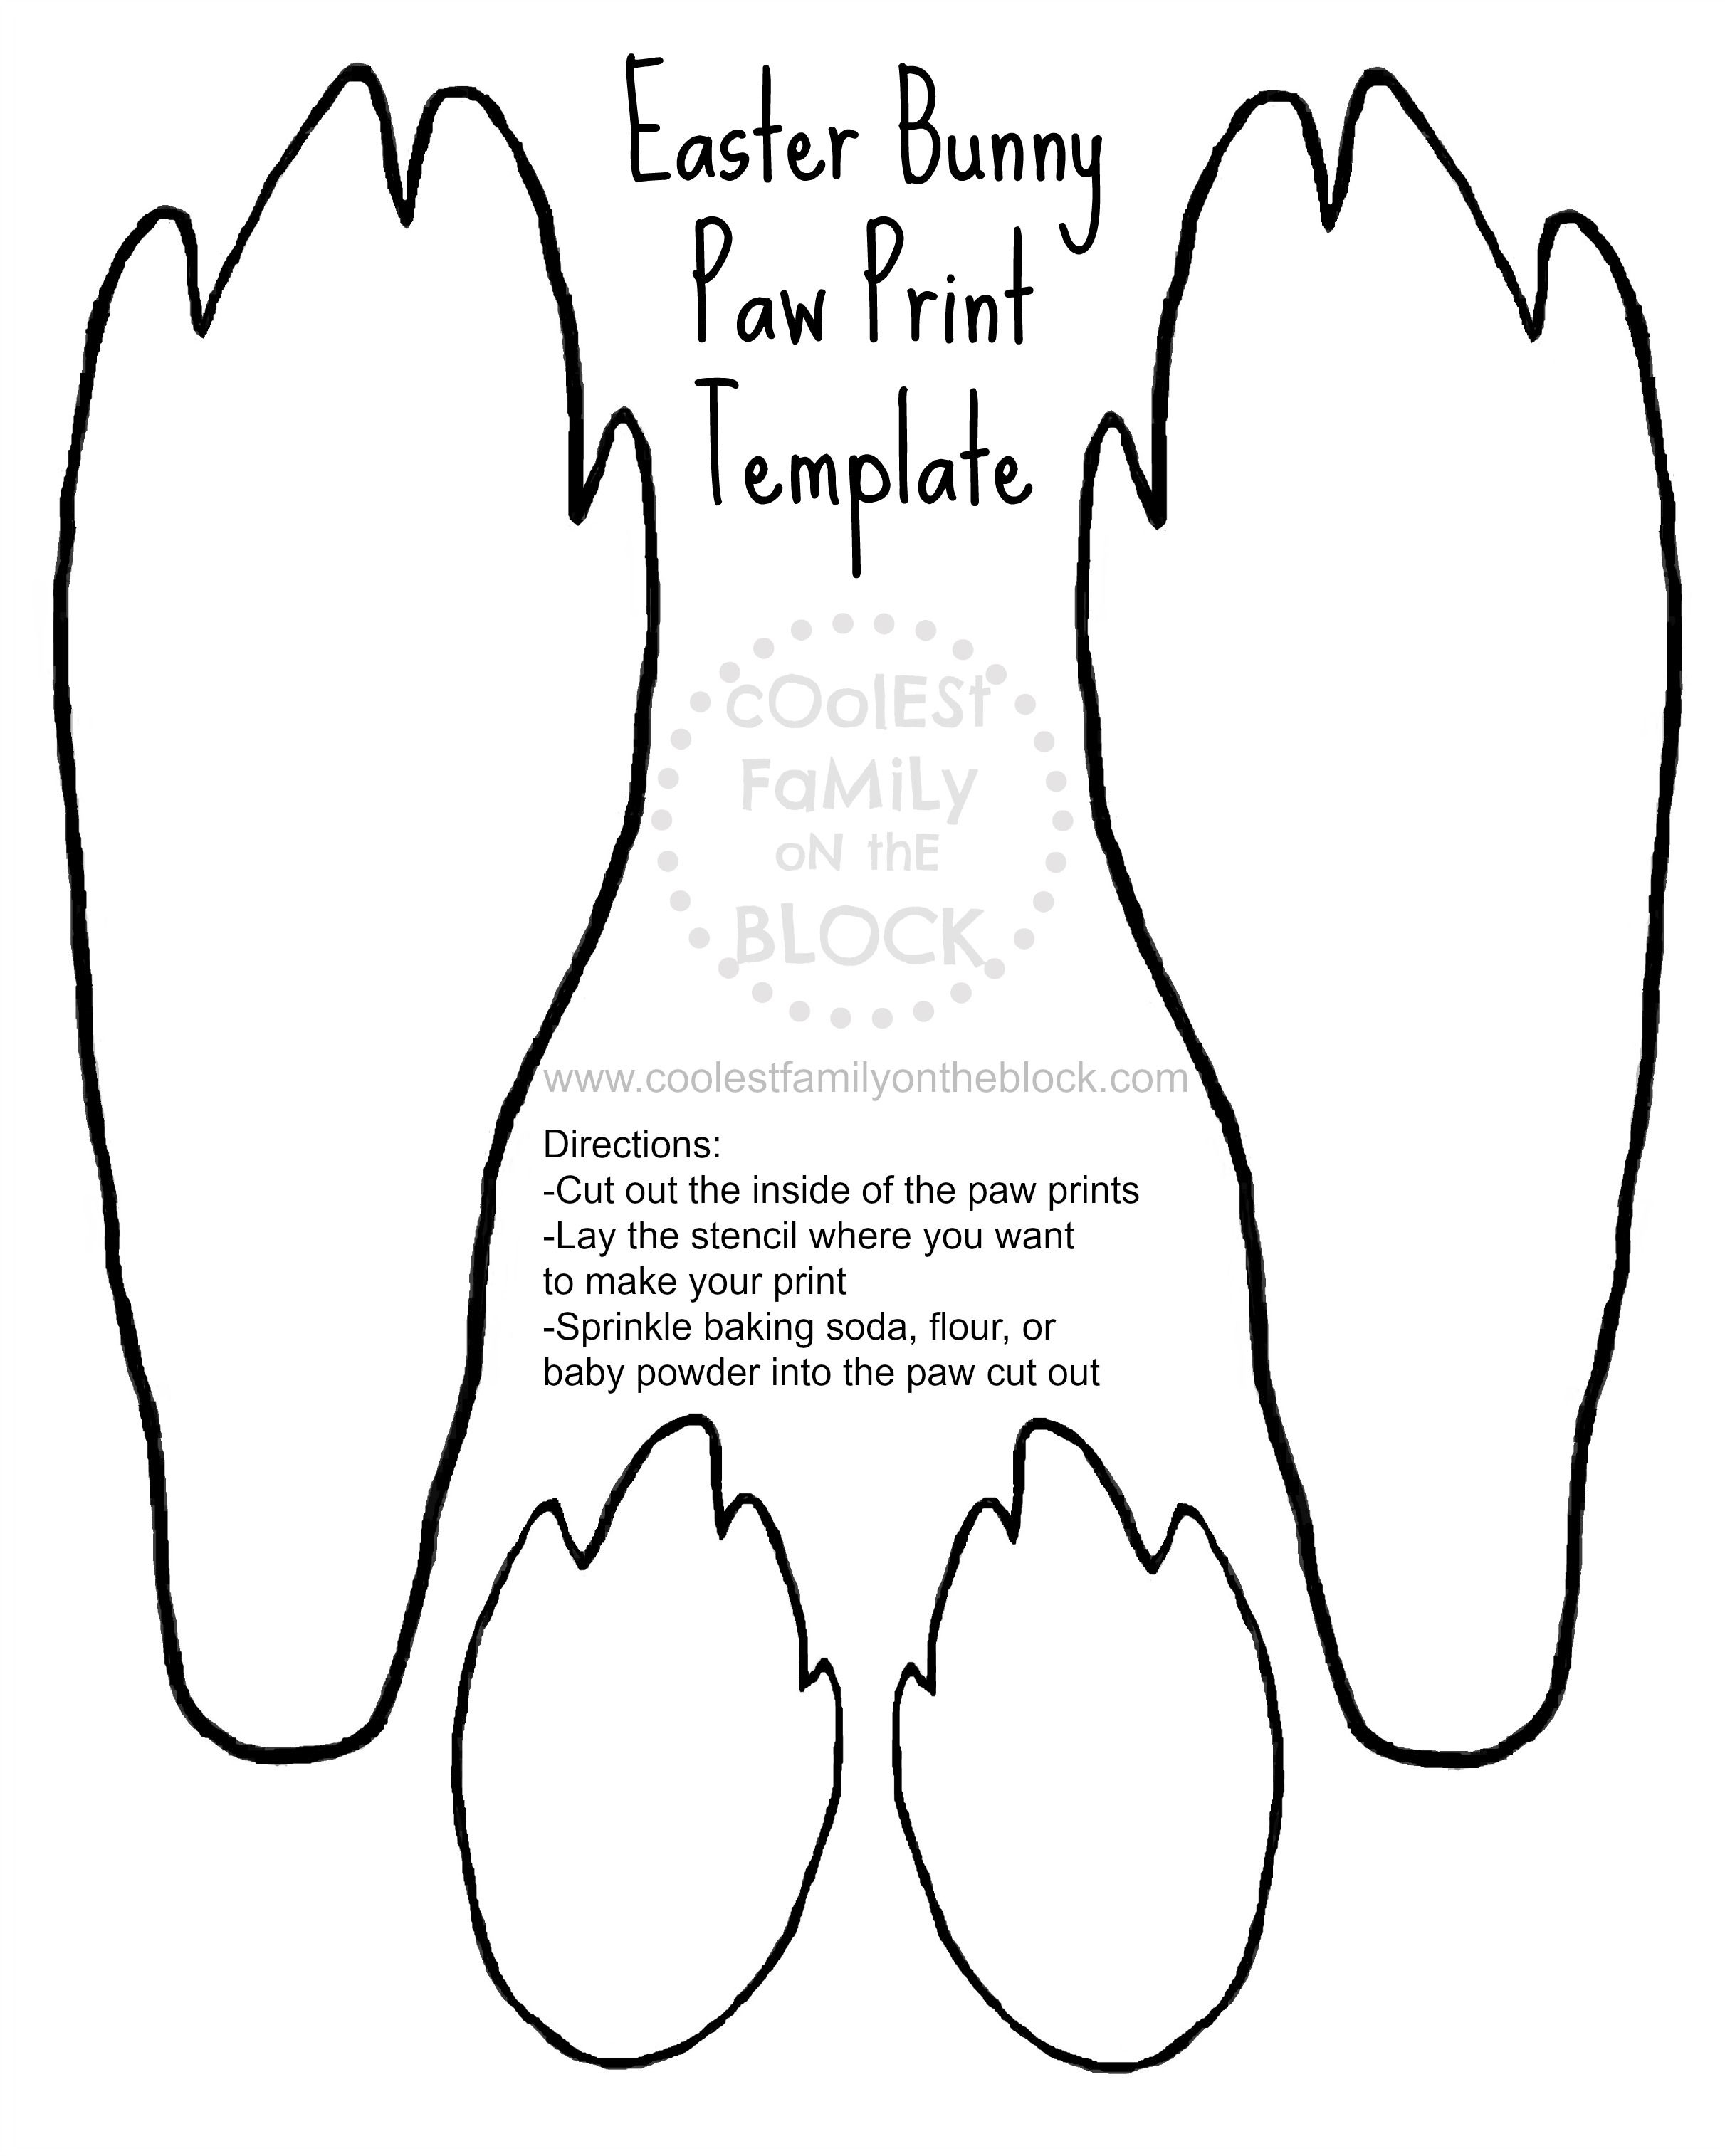 Free Printable Easter Bunny Paw Prints Template: Front And Back Paws - Free Printable Easter Masks